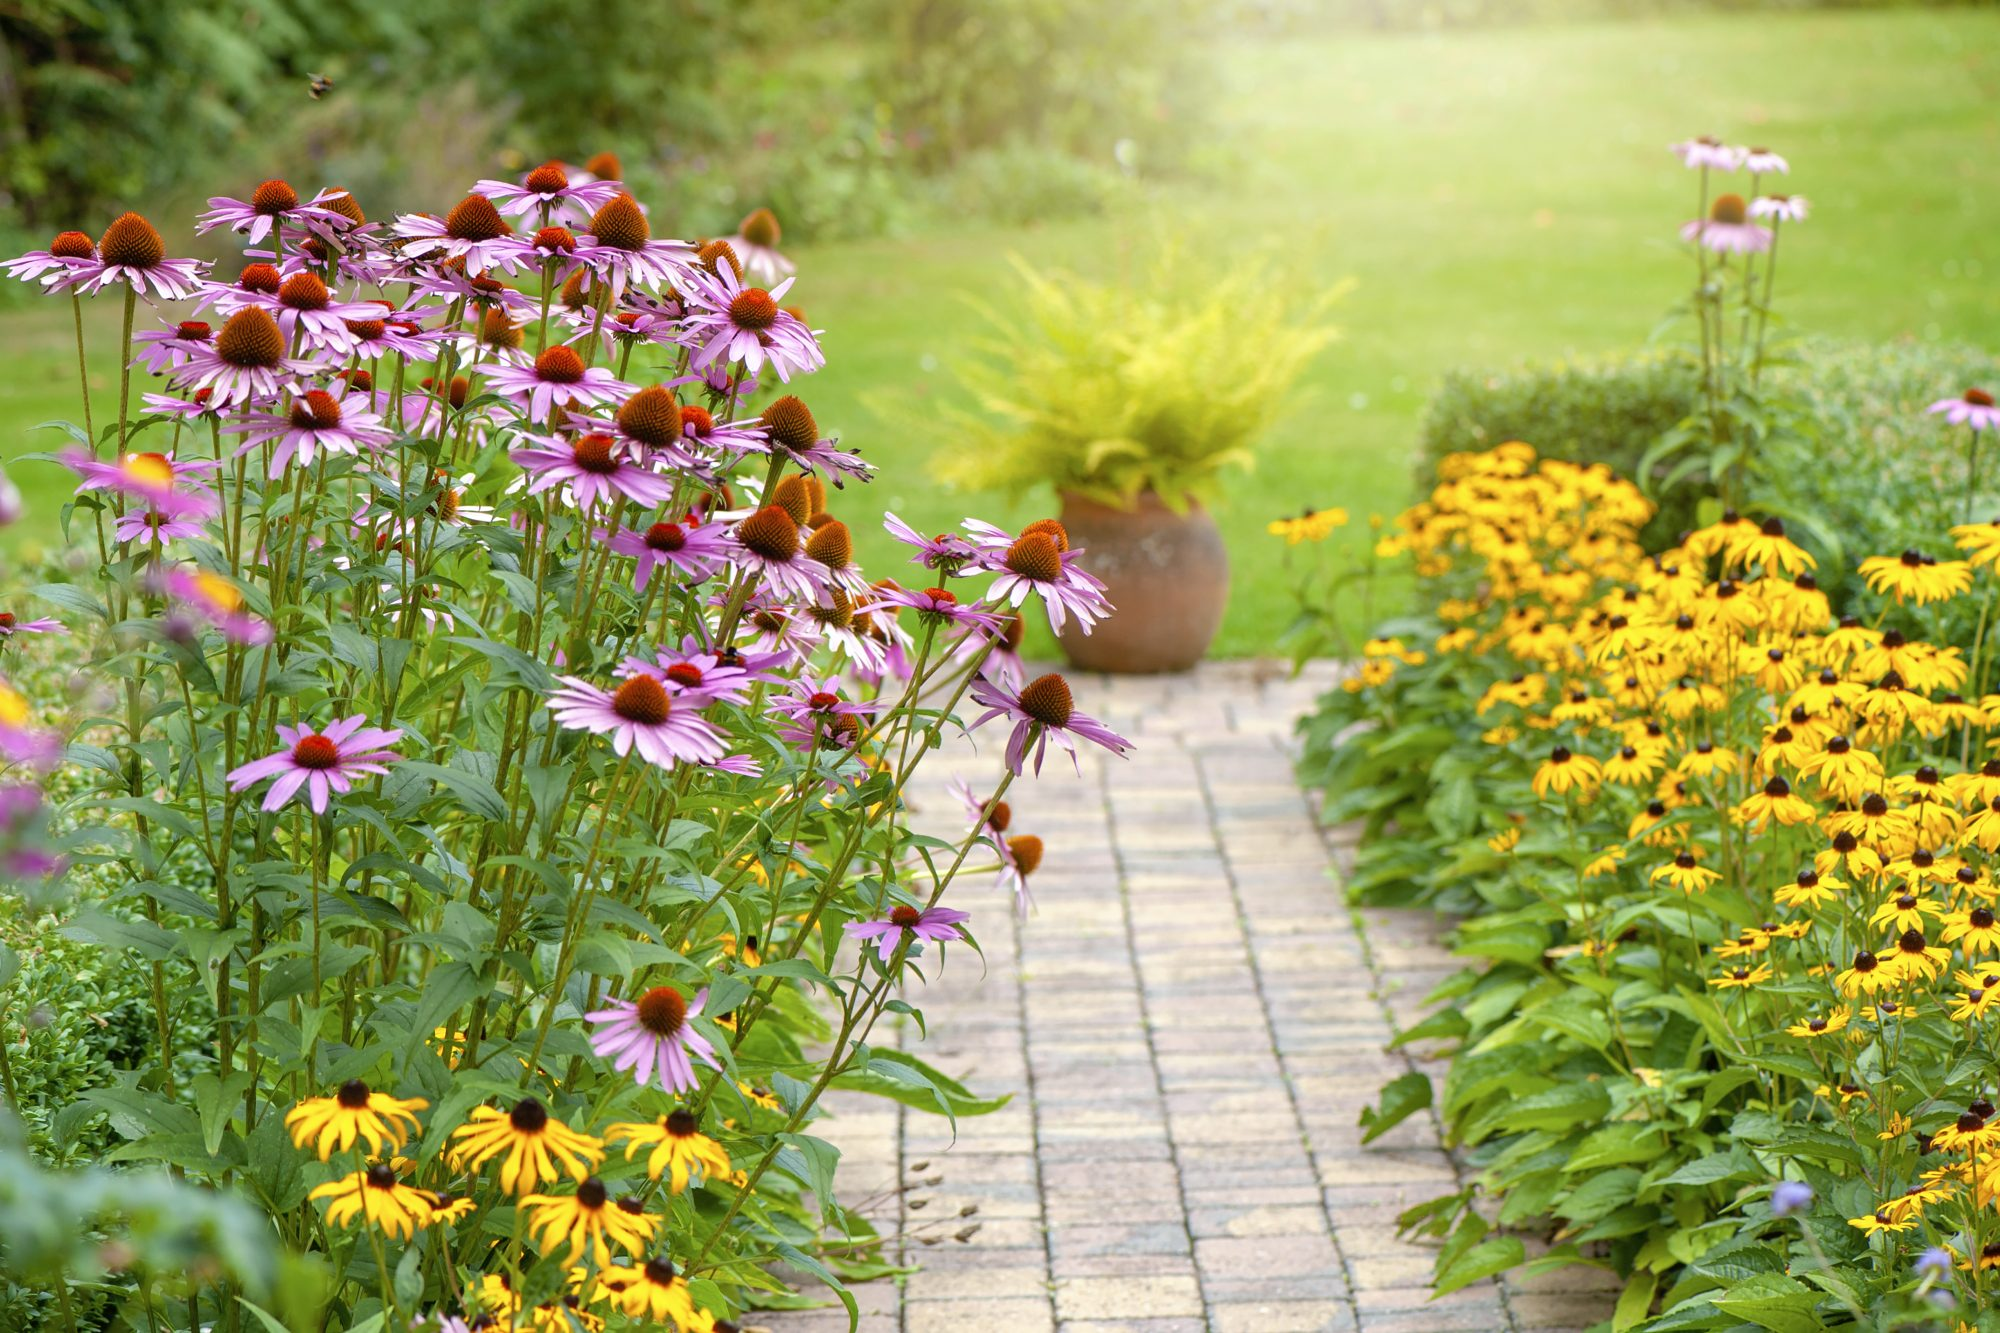 summer garden flower border with Echinacea purpurea, Rudbeckia yellow coneflowers